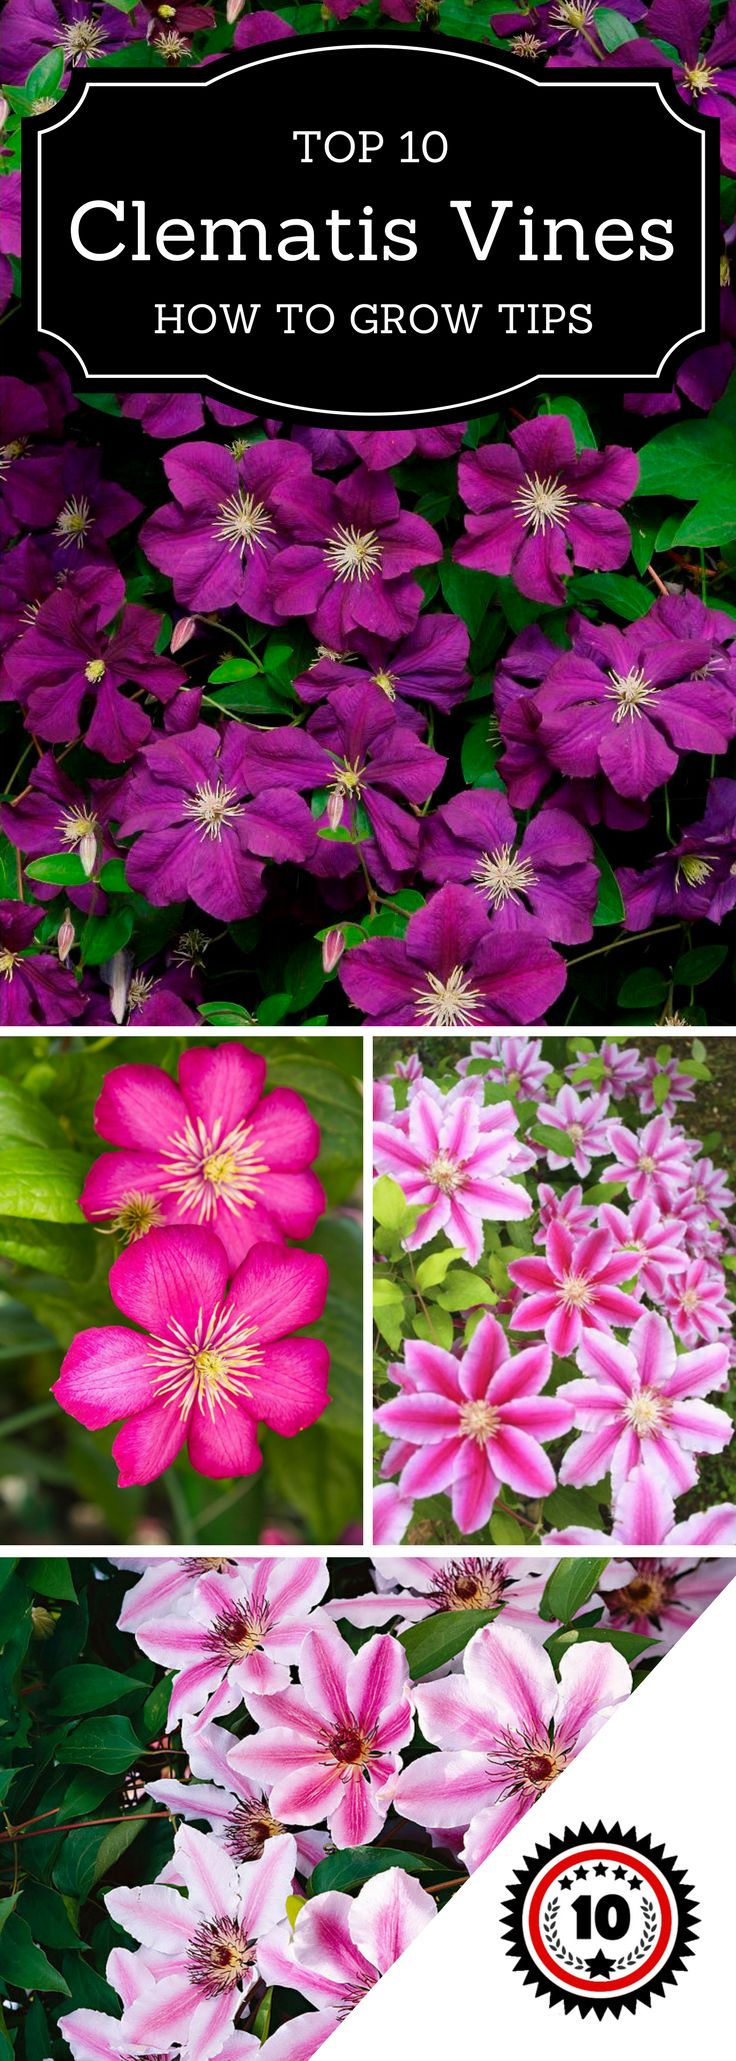 What is truly great about these climbers is that they are very easy to grow if you follow few simple steps. Keep reading to discover how to successfully grow these beauties…